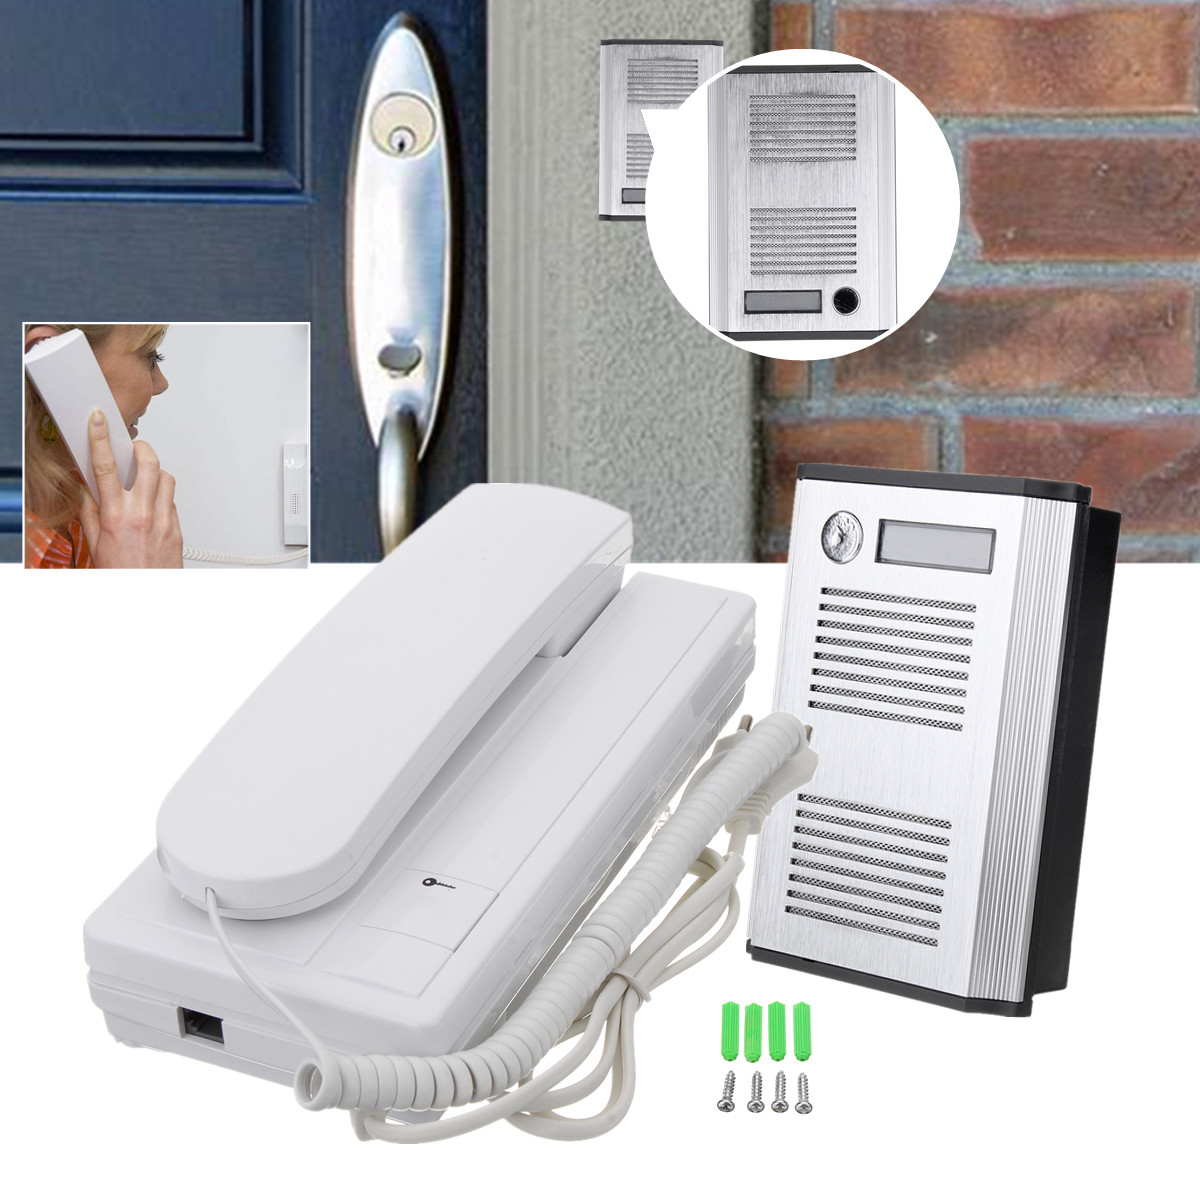 TL-3206B Wired Door Intercom Phone Doorbell Security Entry Call System Apartment Garage